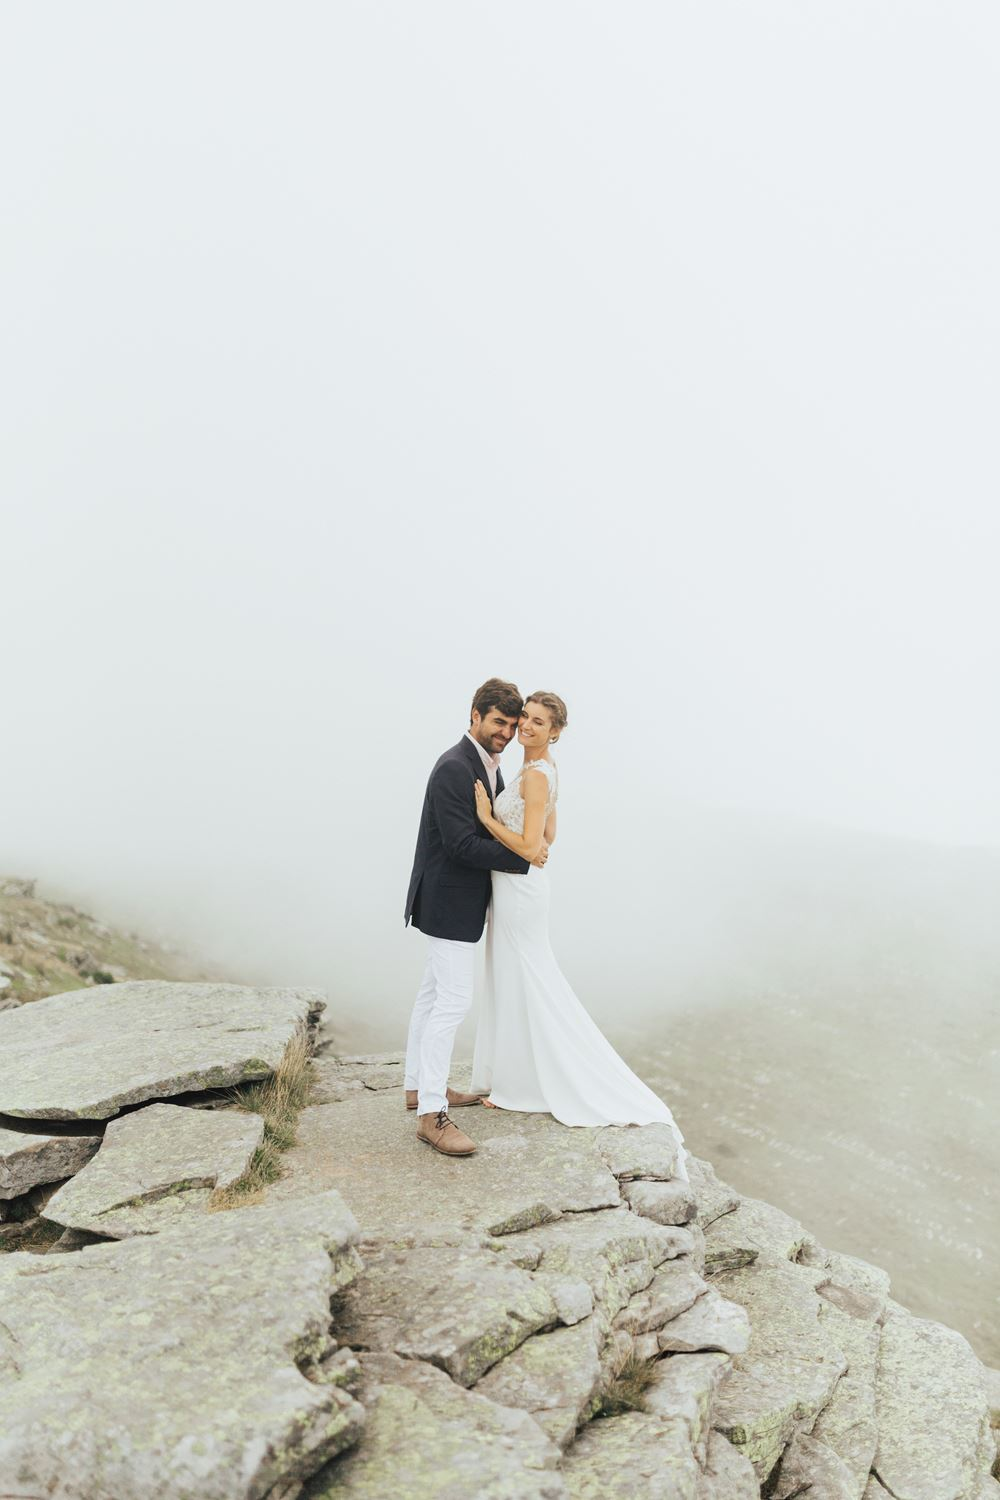 Matthia Toth Wedding Photography in South West France